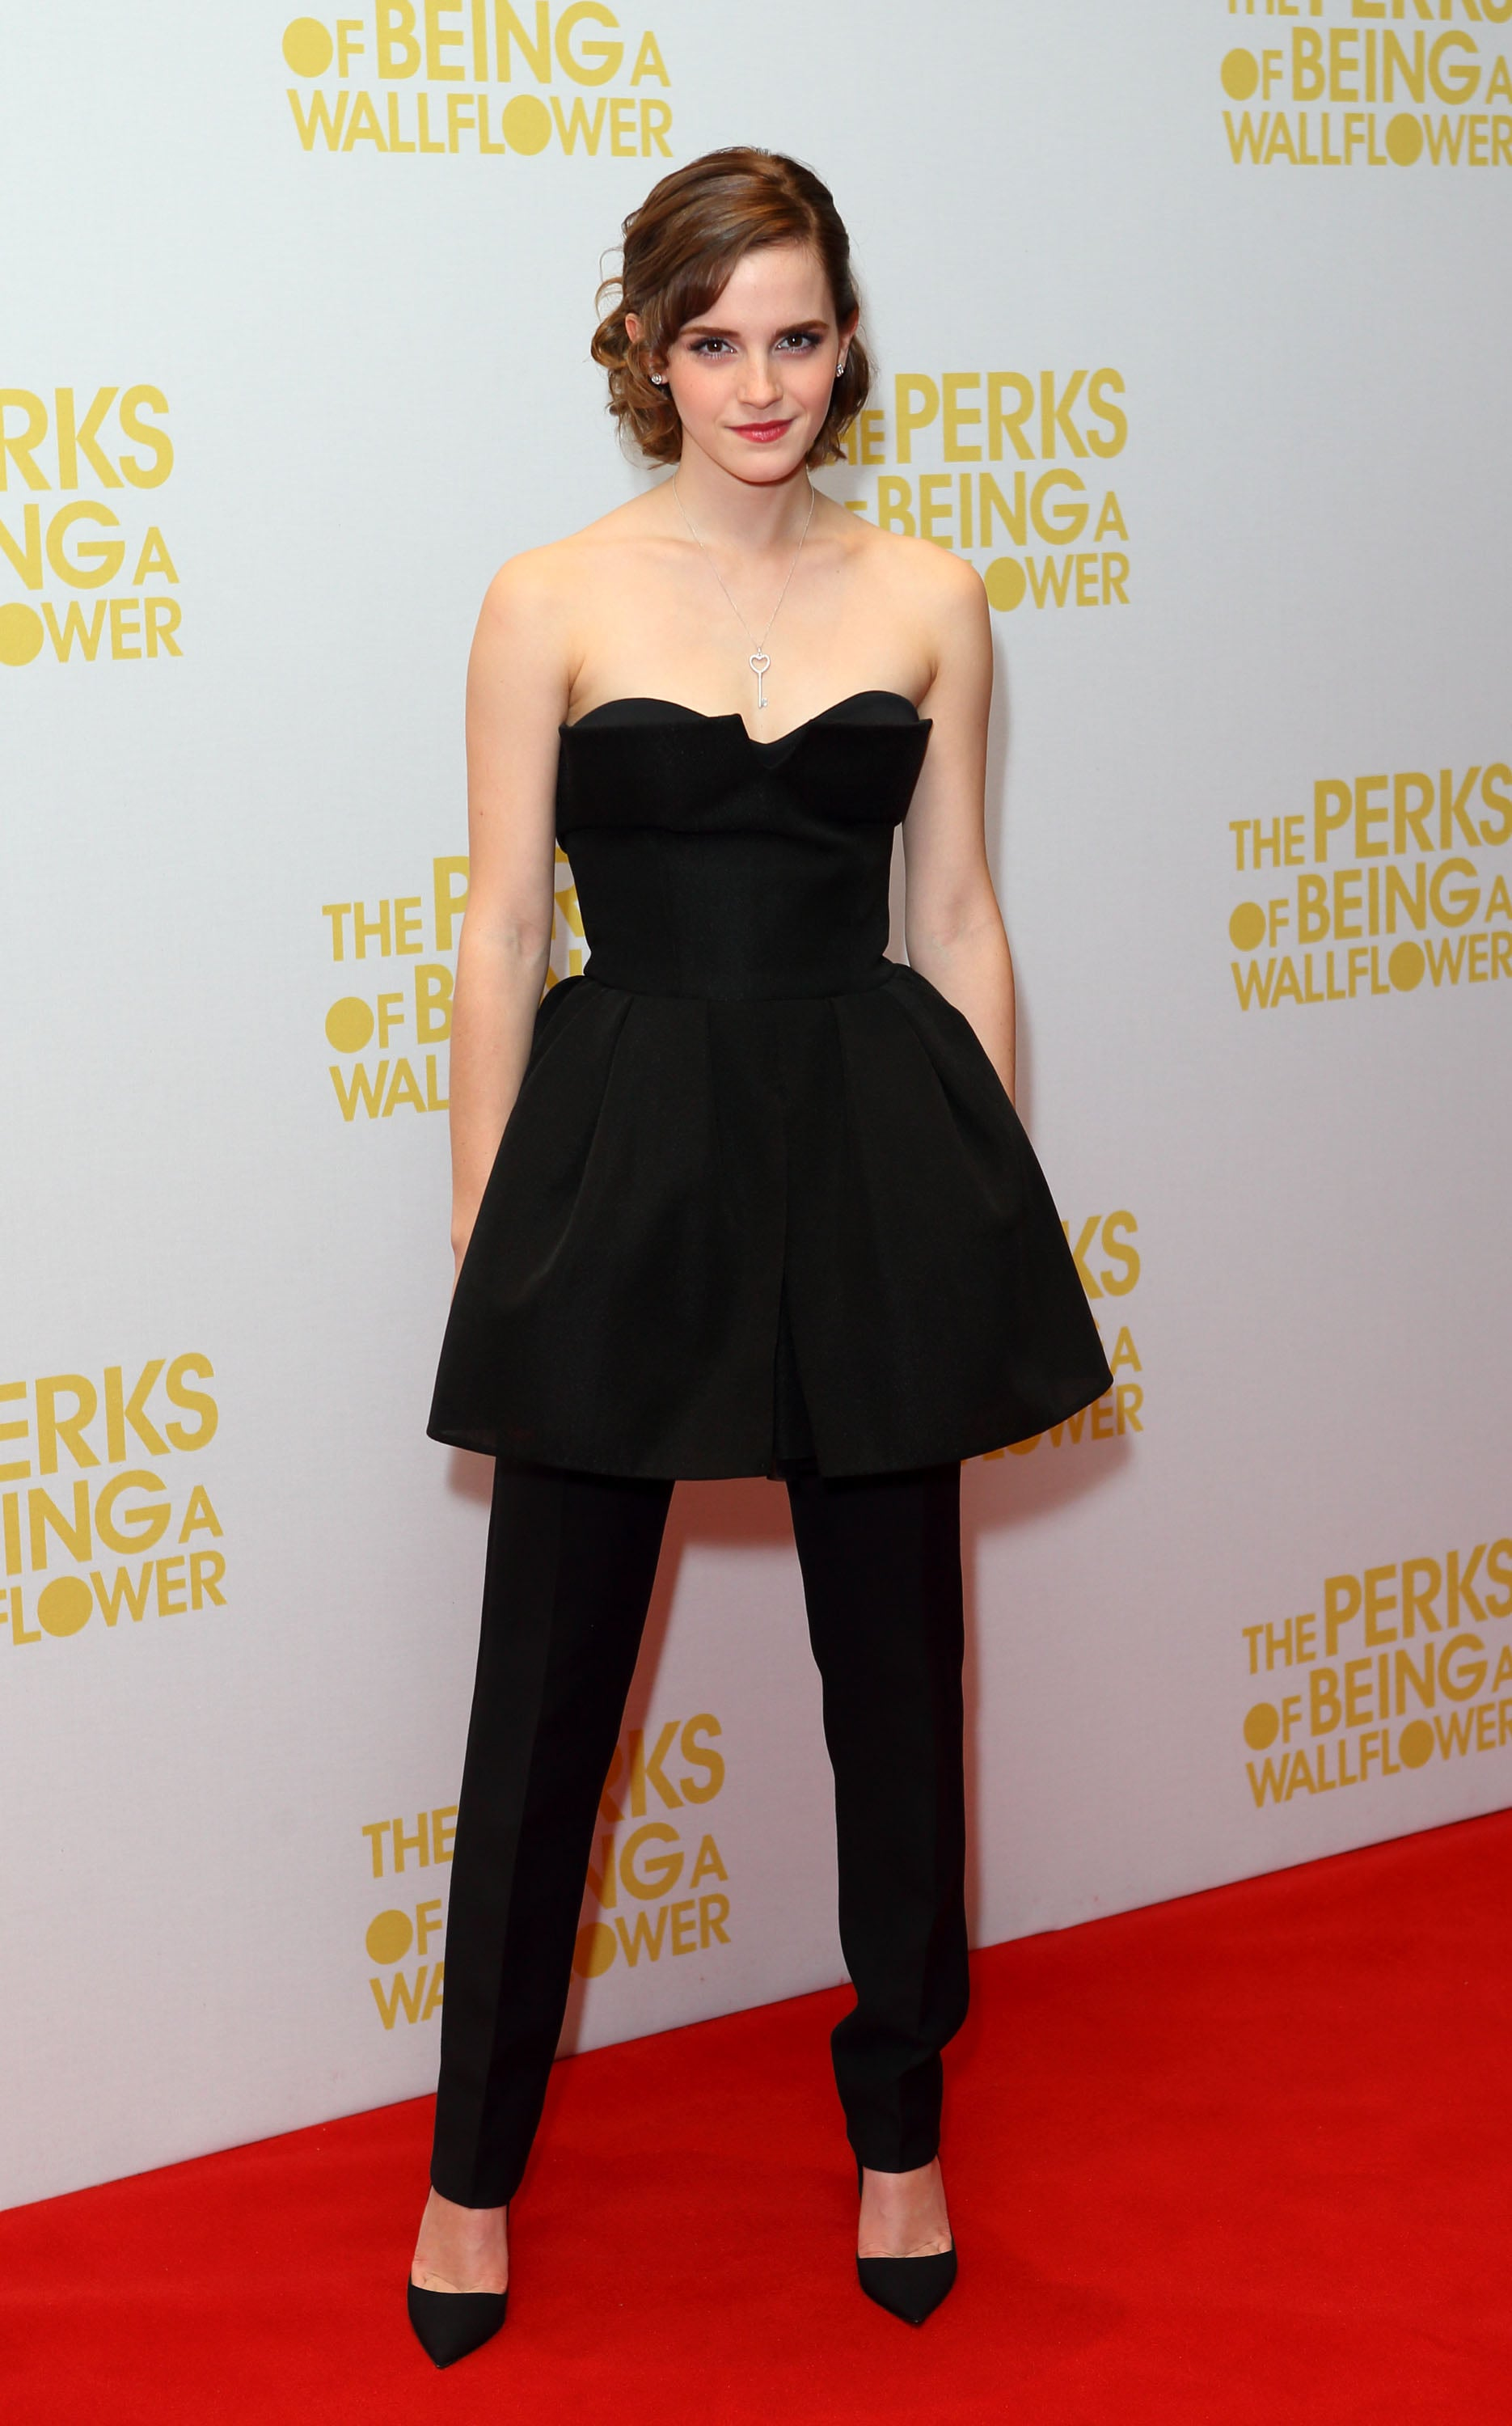 Emma Watson in Christian Dior Couture at 2012 The Perks of Being a Wallflower London Premiere